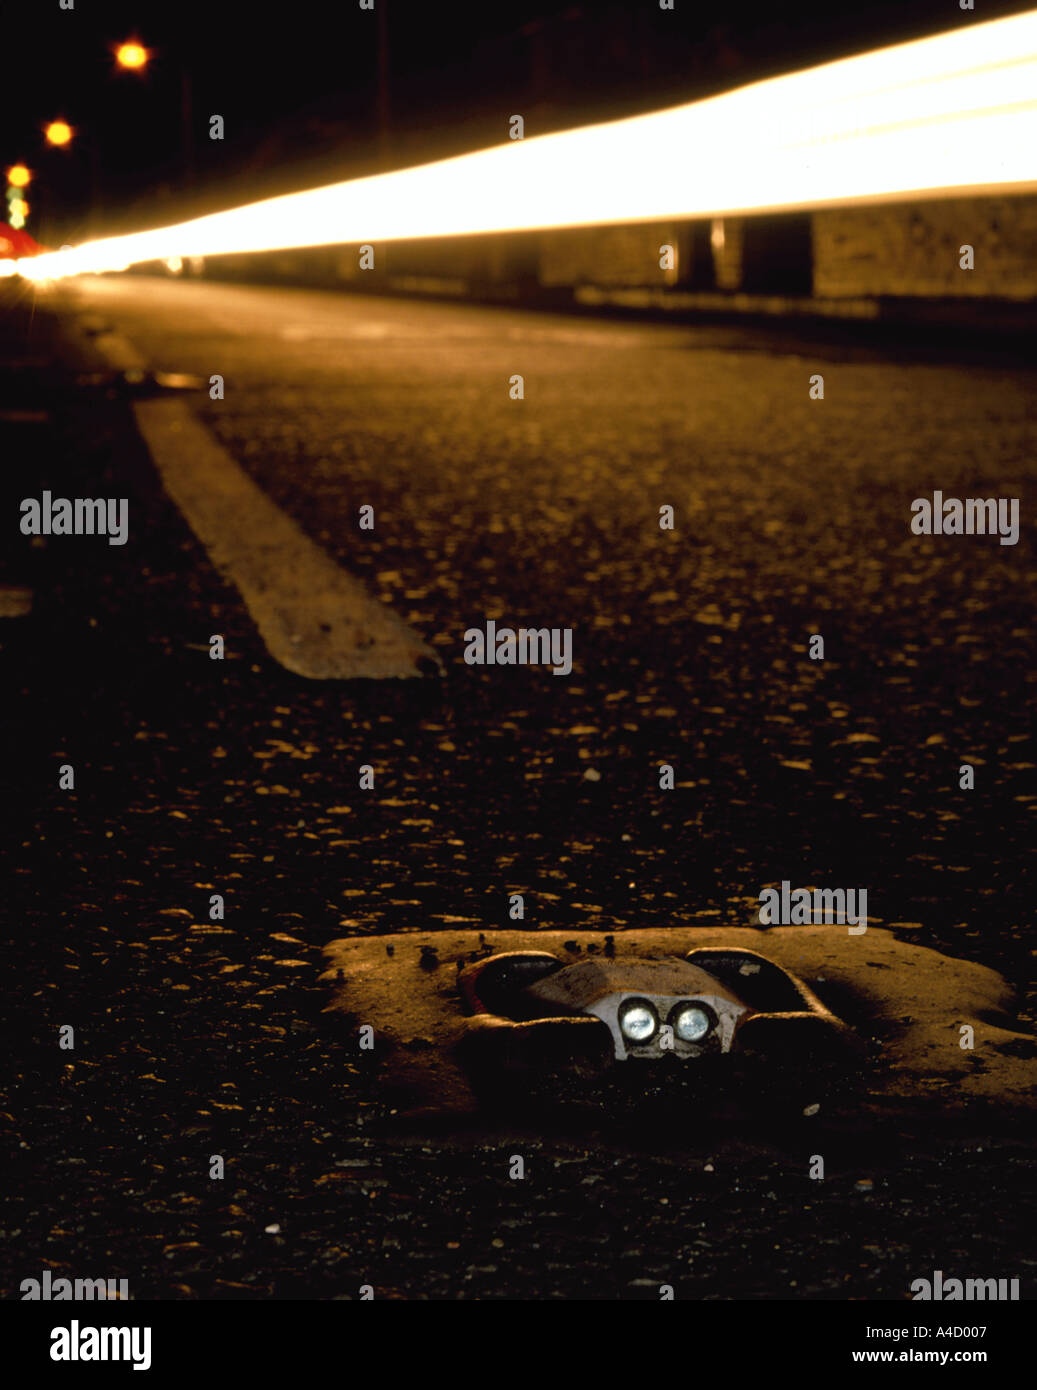 Cats Eyes Road >> Glass Cats Eyes In A Road At Night England Uk Stock Photo